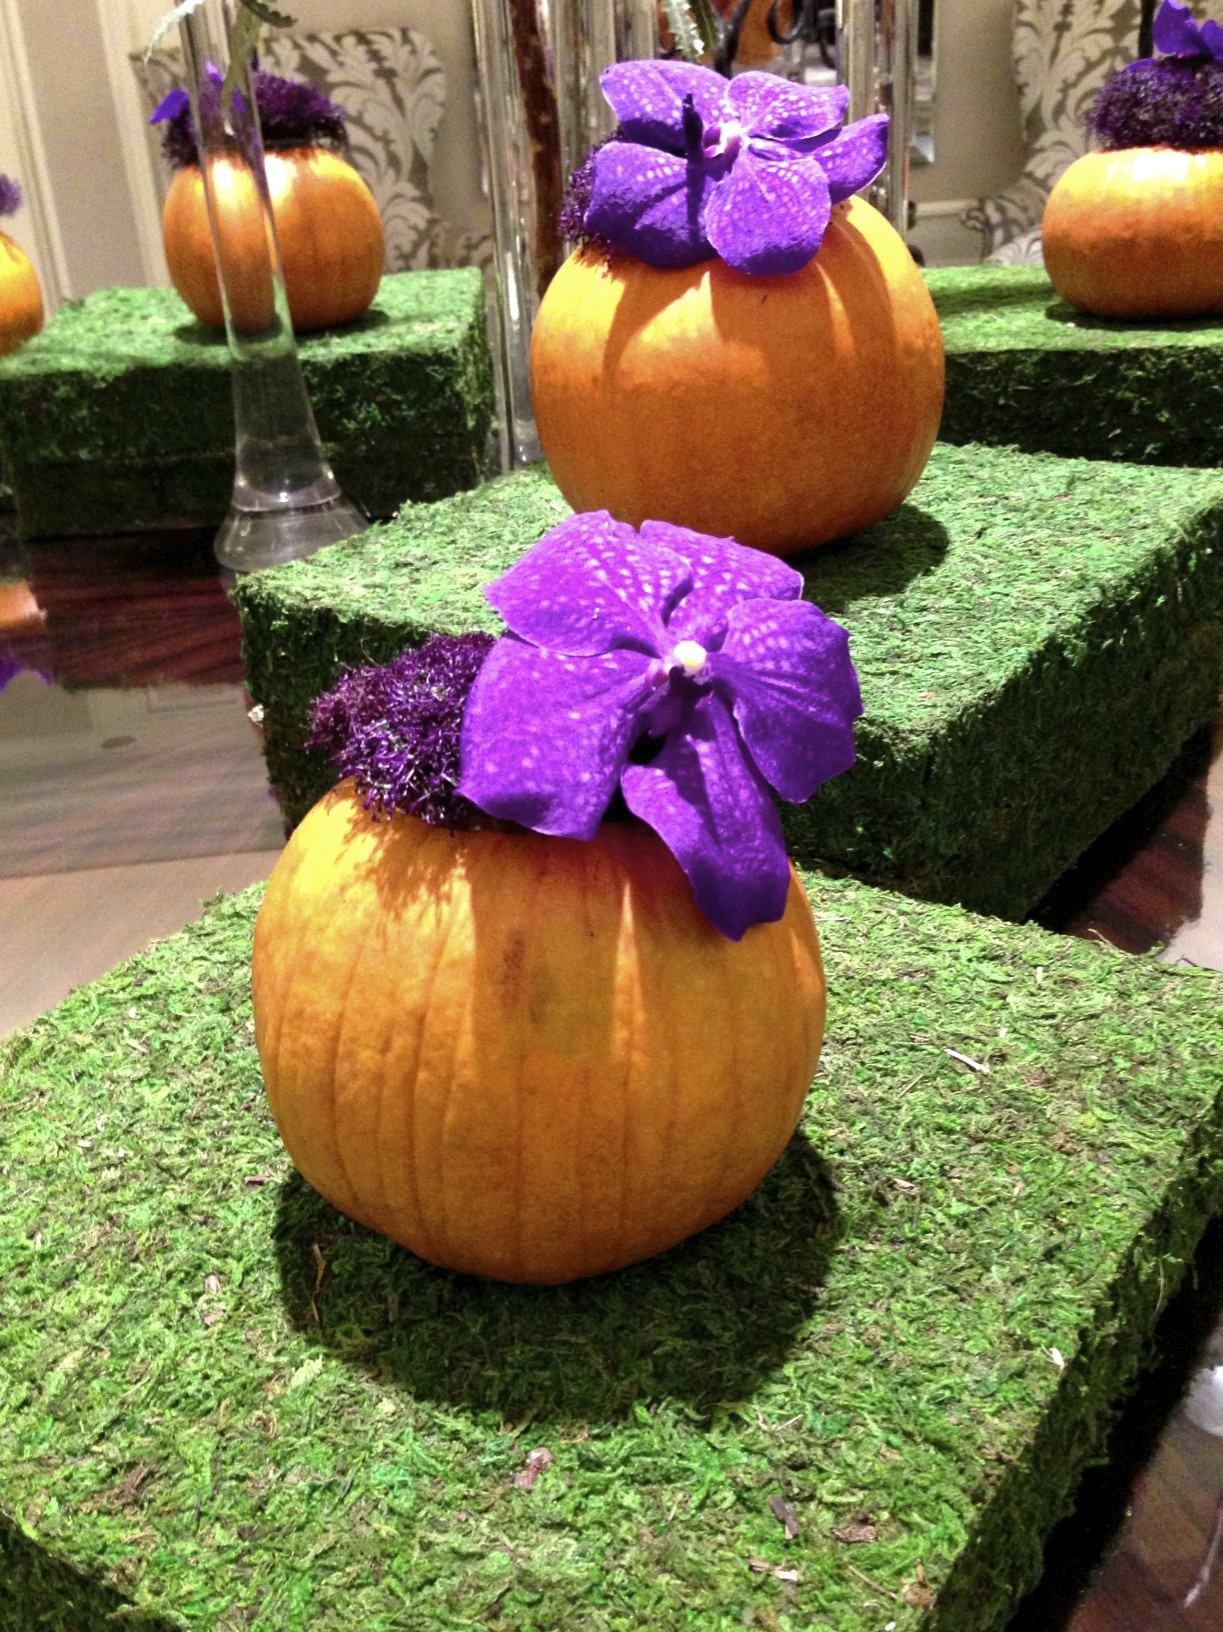 orchids and pumpkins